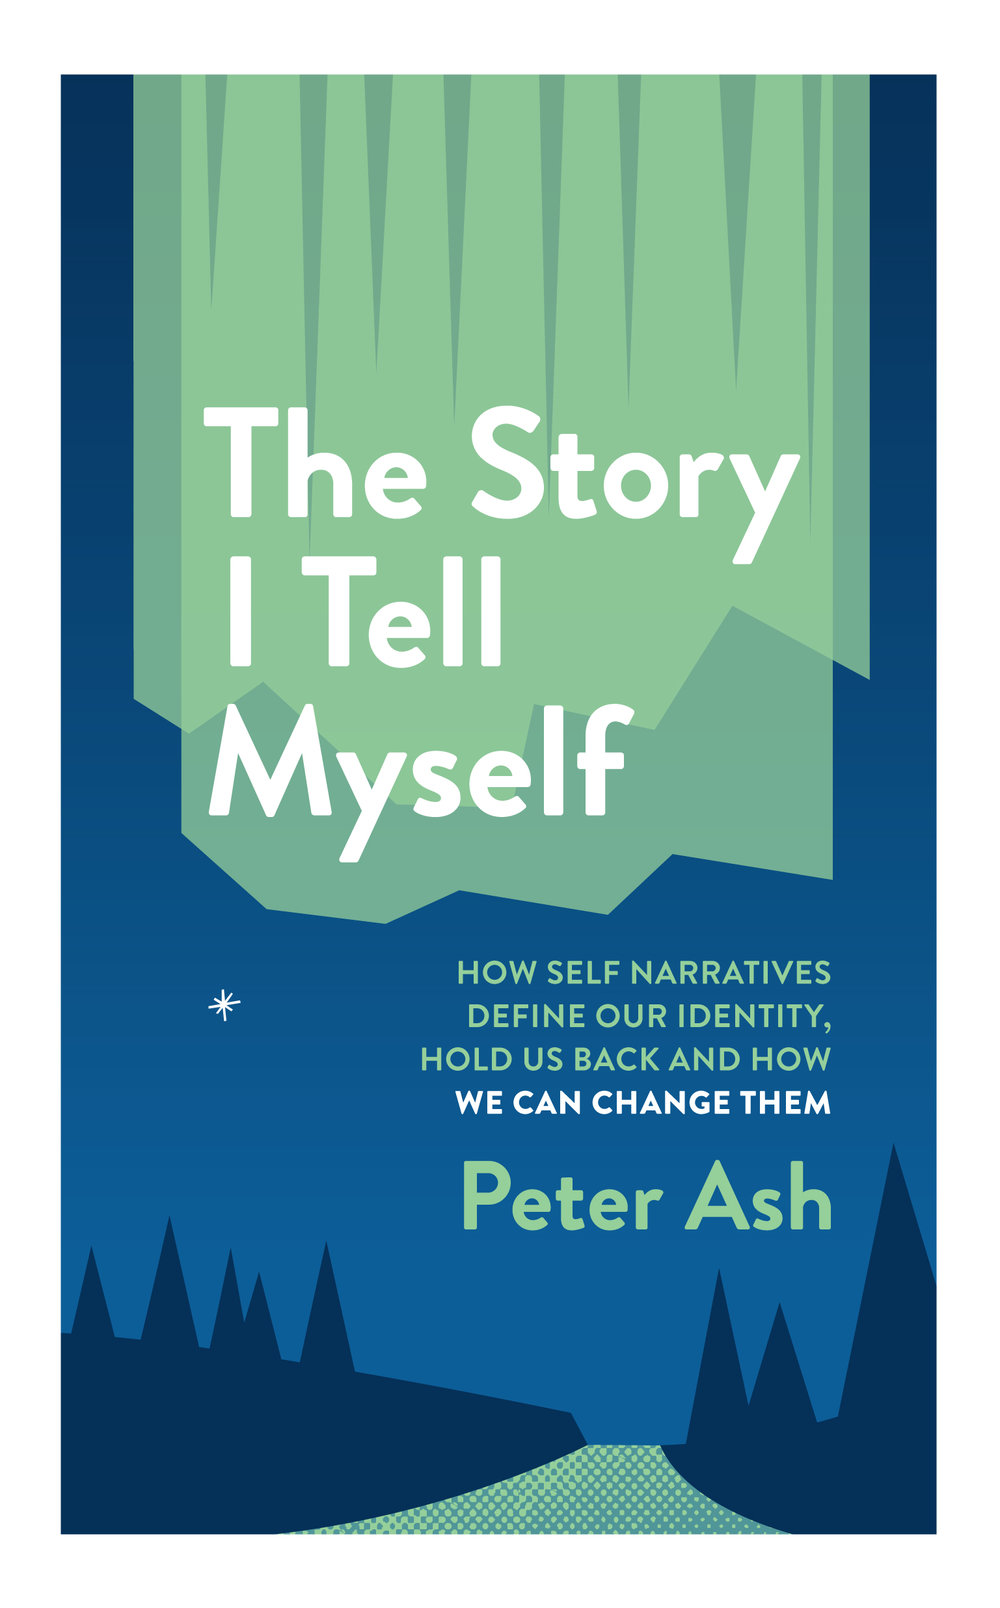 - The Story I tell myselfYou know who you are, right? Of course you do, you're you! But what if who you think you are is actually holding you back, closing off exciting opportunities that are right in front of you, and preventing you from achieving your best potential?  This book explores the concept of self-narrative, or the stories that we tell ourselves about who we are and our place in the world.In this book, I explore how understanding our own self-narratives and challenging them can enable you to change how you think about yourself and open up those opportunities that you could be missing. Using examples from my own journey, I provide a process that you can follow to increase your own self-awareness, understand what your self-narrative says and how it impacts your daily life,  and gives a template on how to make changes to your narrative.We are powerful storytellers, telling ourselves our most impactful story of all. By understanding and changing your story you can make real positive change in your life. Use your own story to learn, grow and achieve what you want.